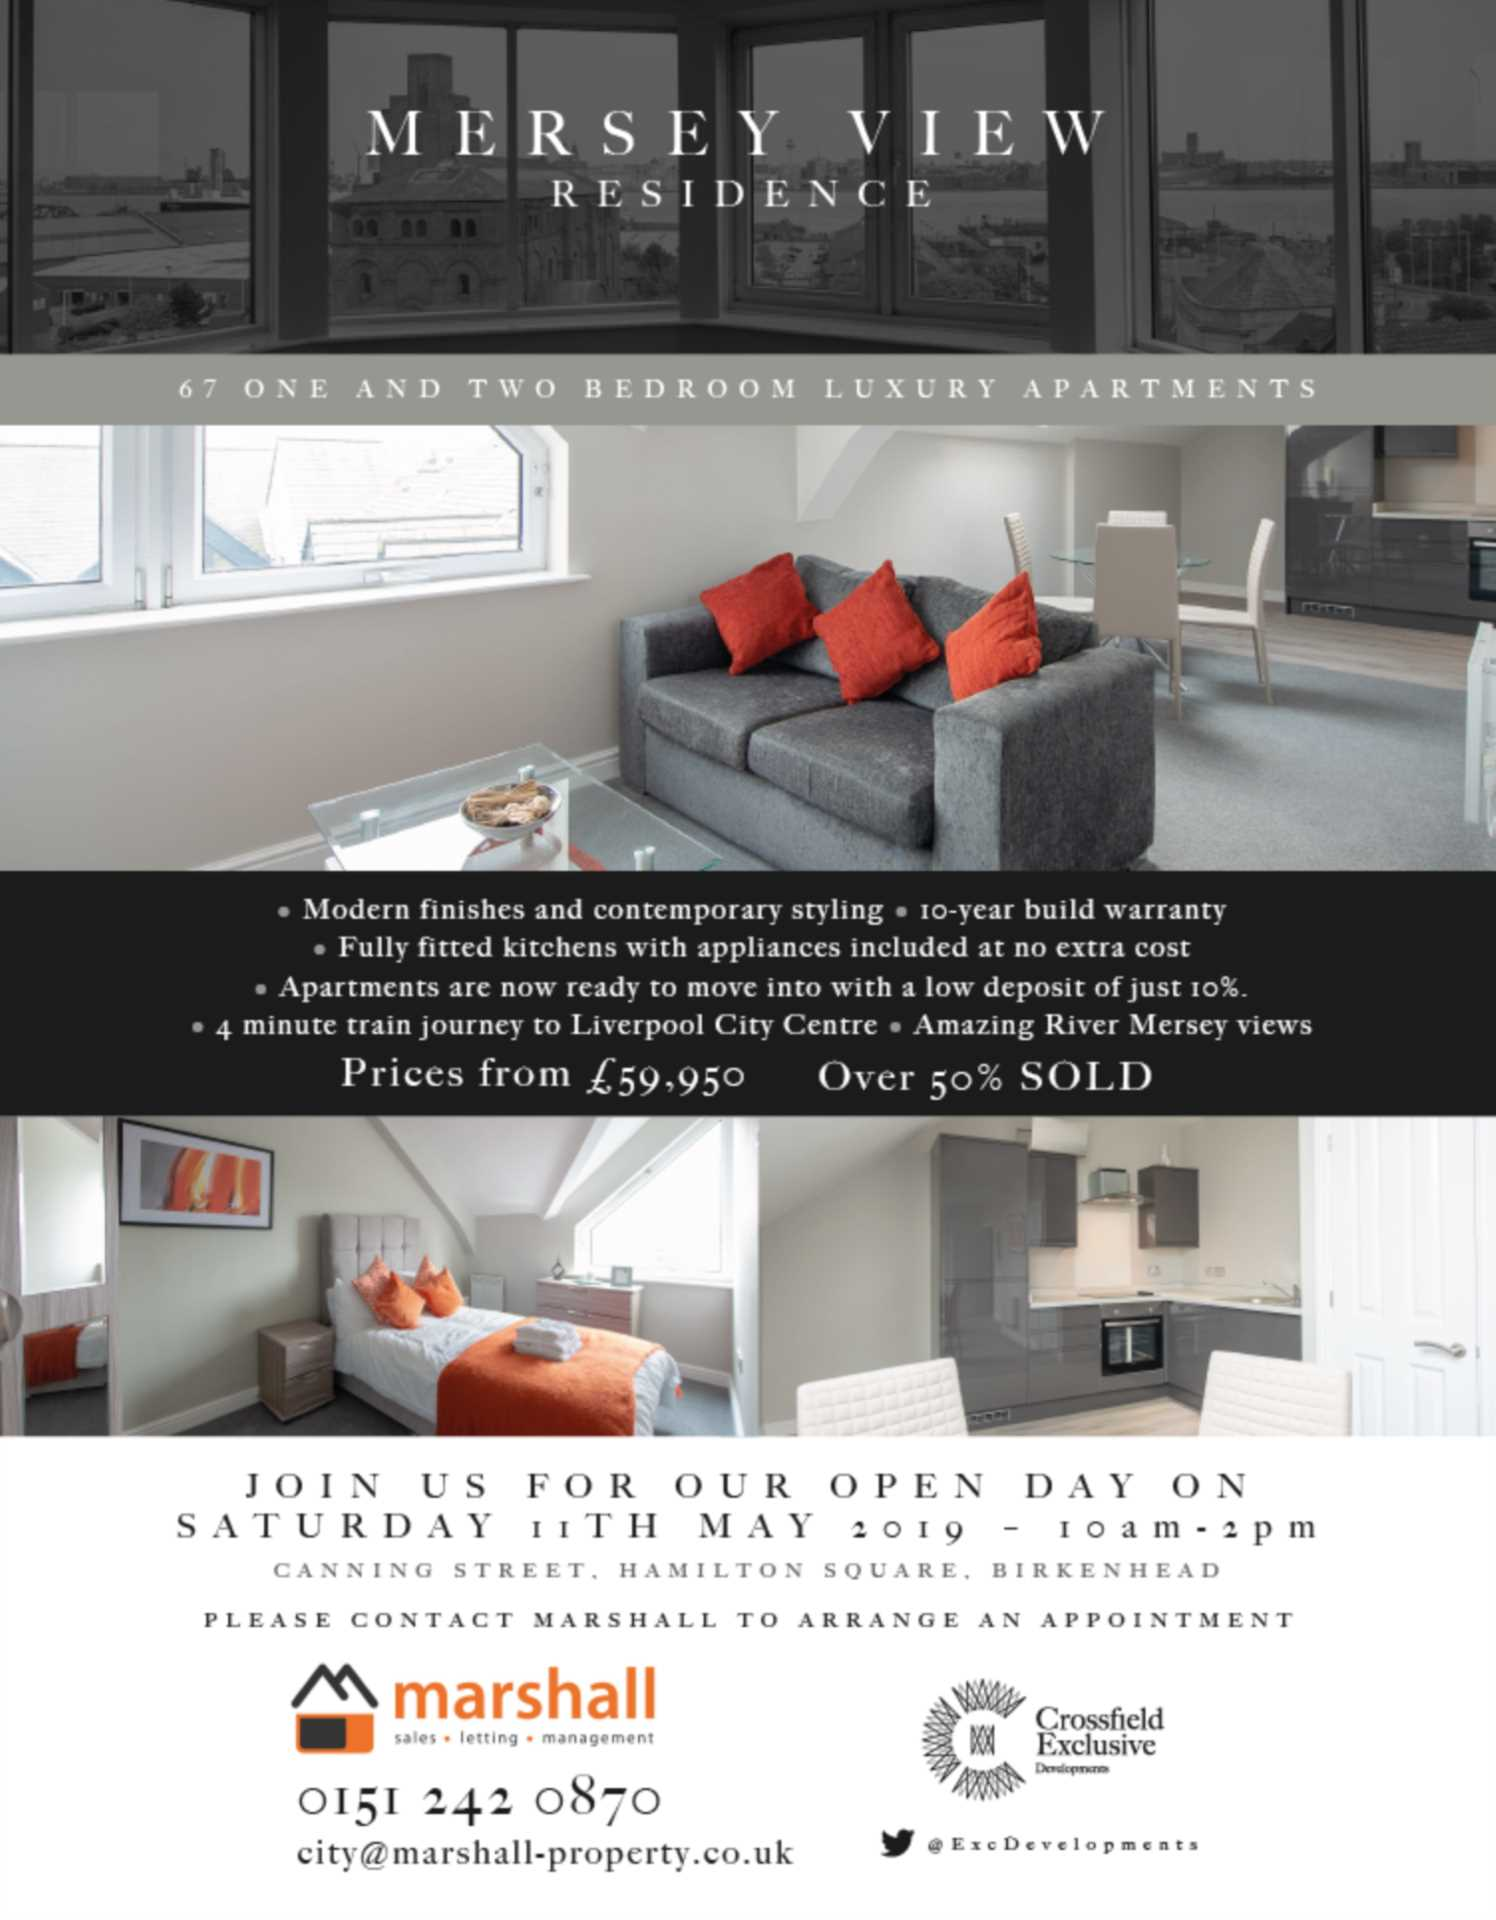 Mersey View Residence - Open Day